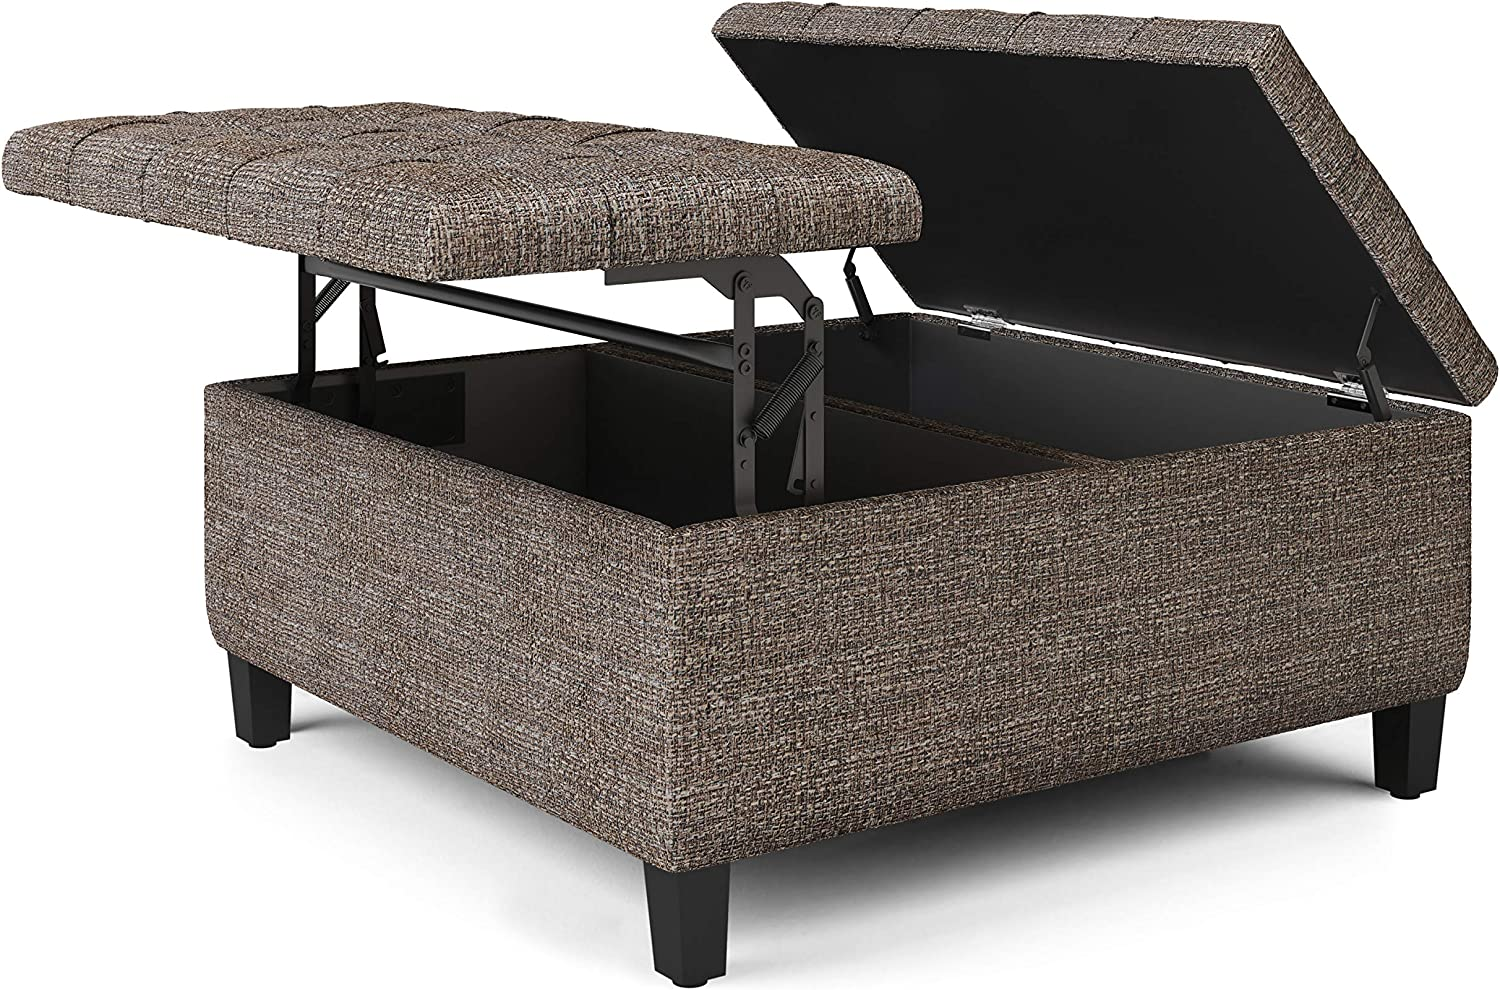 Ottomans Simpli Home Harrison 36 Inch Wide Square Coffee Table Lift Top Storage Ottoman Traditional Cocktail Footrest Stool In Upholstered Distressed Brown Tufted Faux Air Leather For The Living Room Home